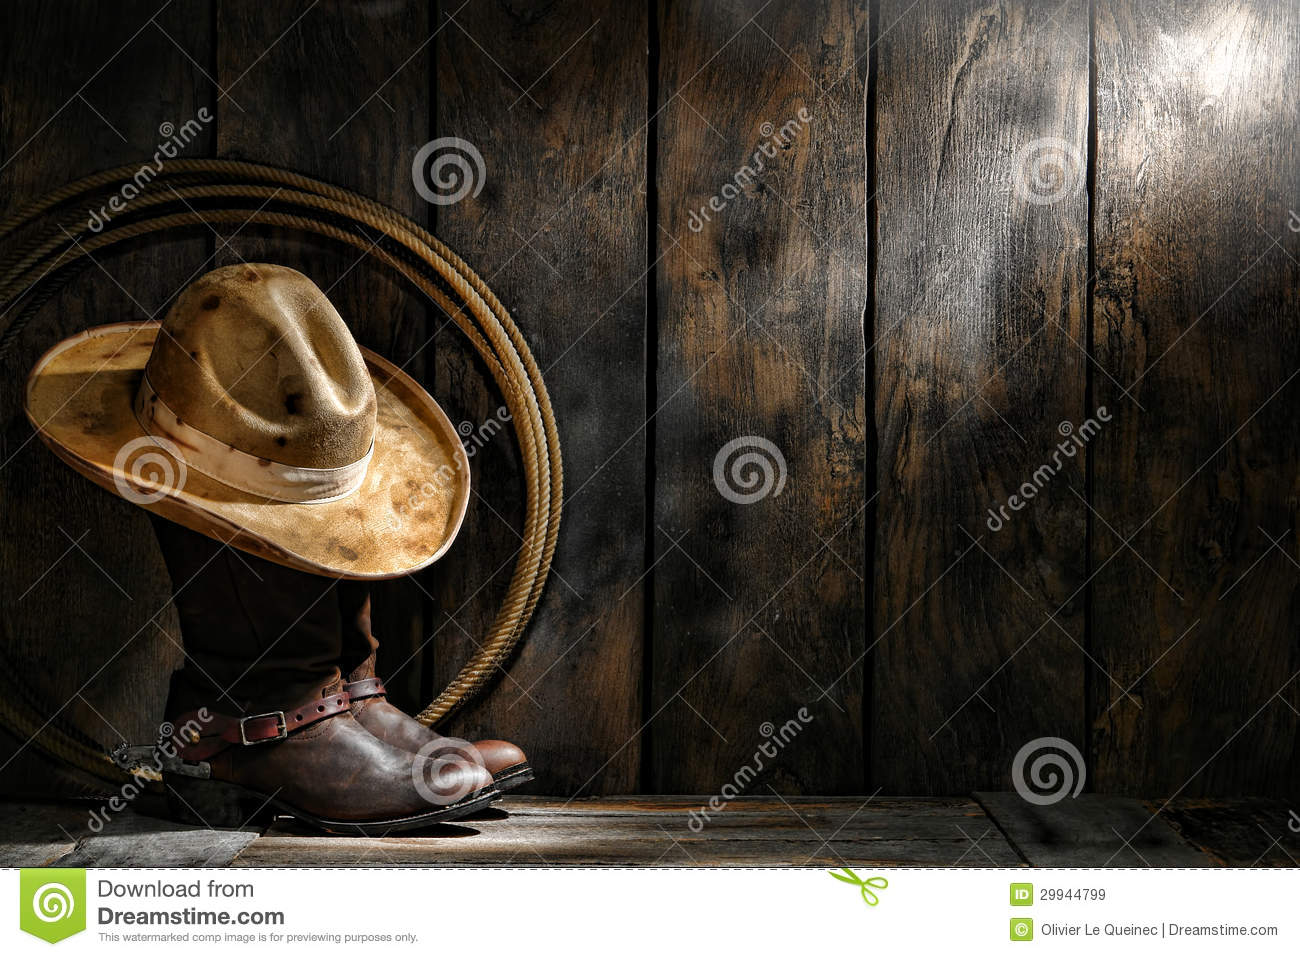 733f4e73633 American West rodeo cowboy dirty used felt hat atop worn leather working  rancher roper boots with old spurs and lasso lariat in an antique ranch  weathered ...